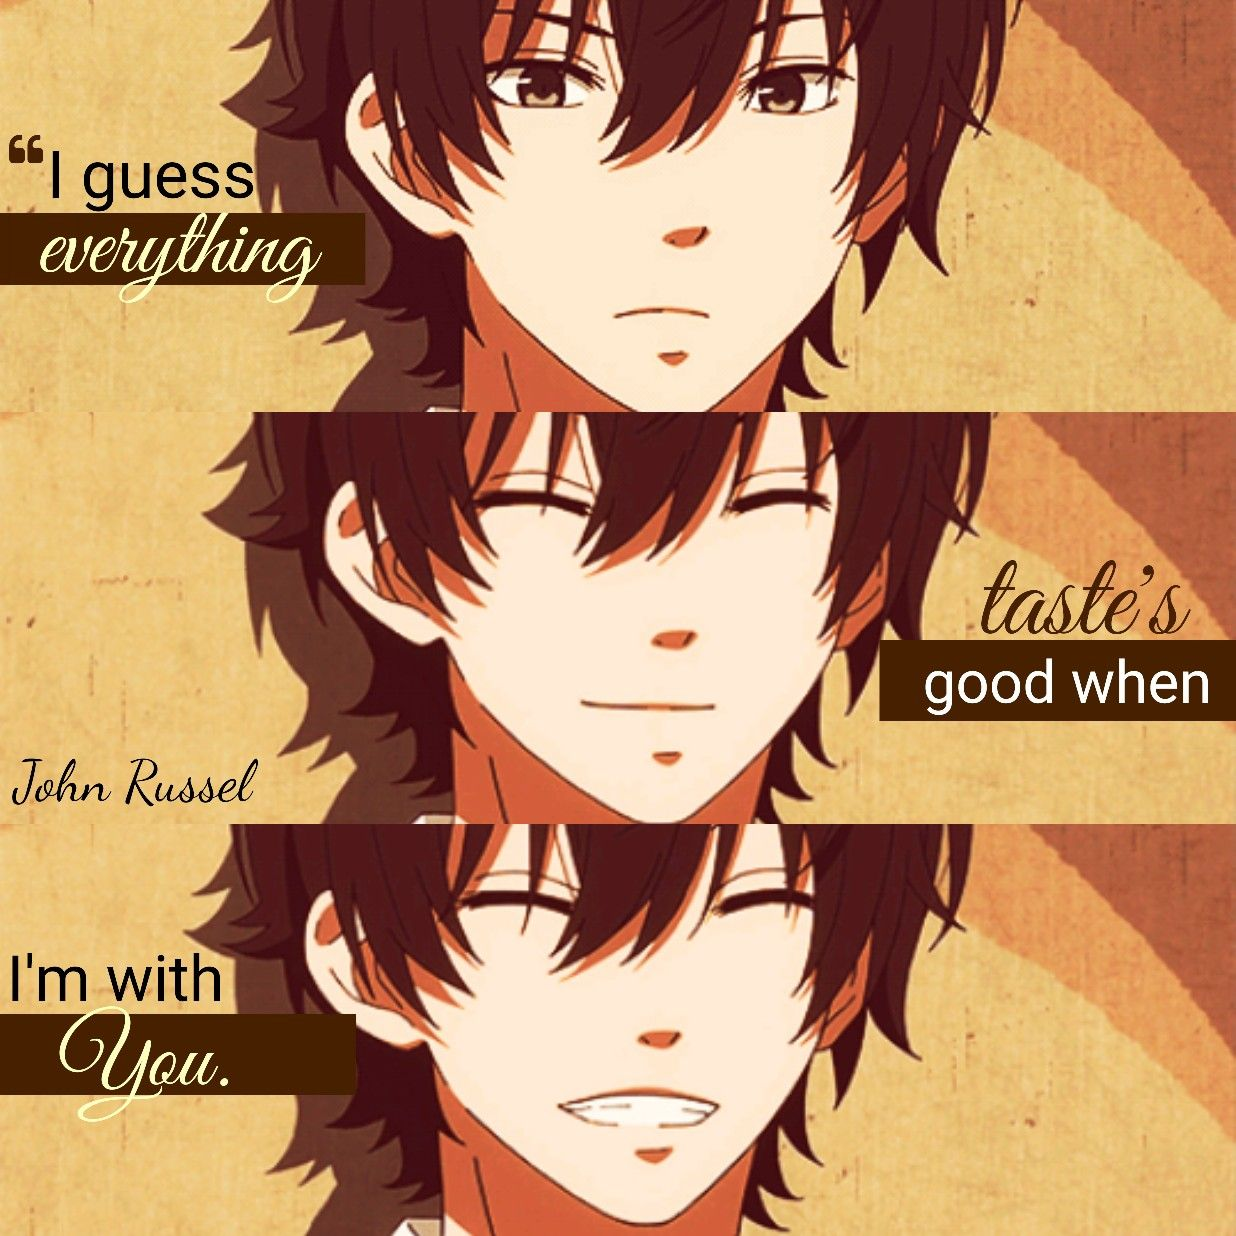 Pin by AnimeQuotesJohnRussel on Anime Quotes Edits Anime